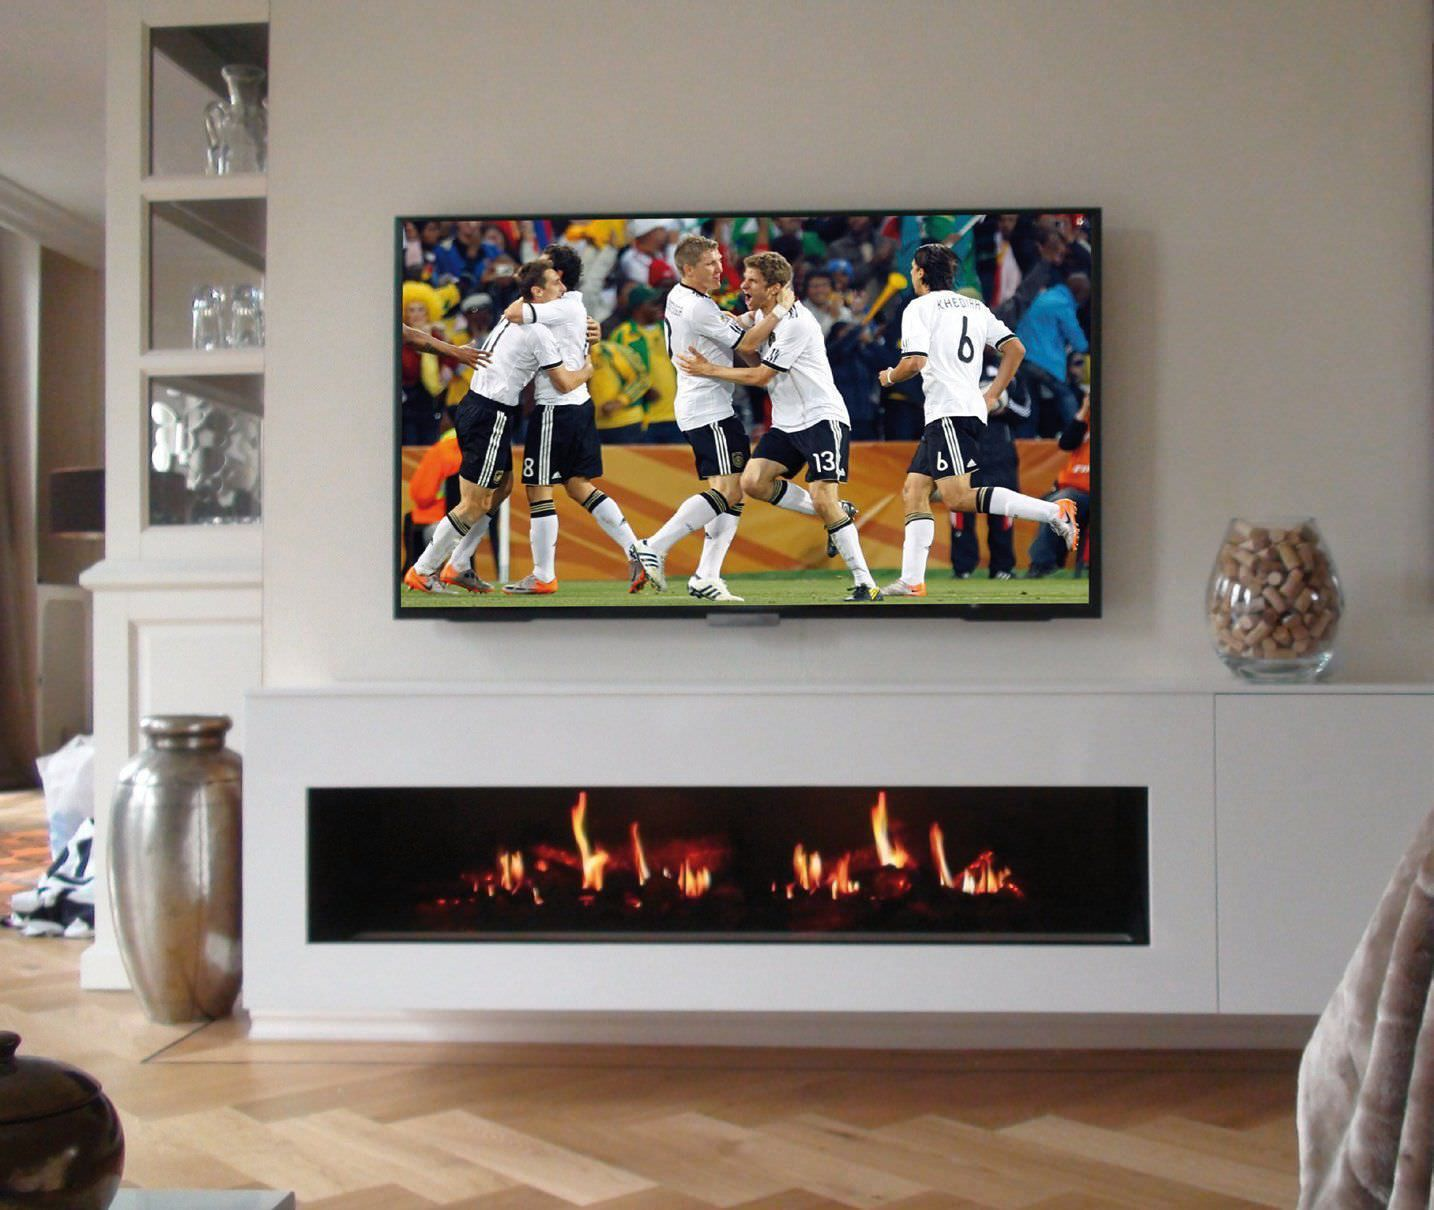 Opti V Kamin Electric Fireplace / Built-in / Closed Hearth